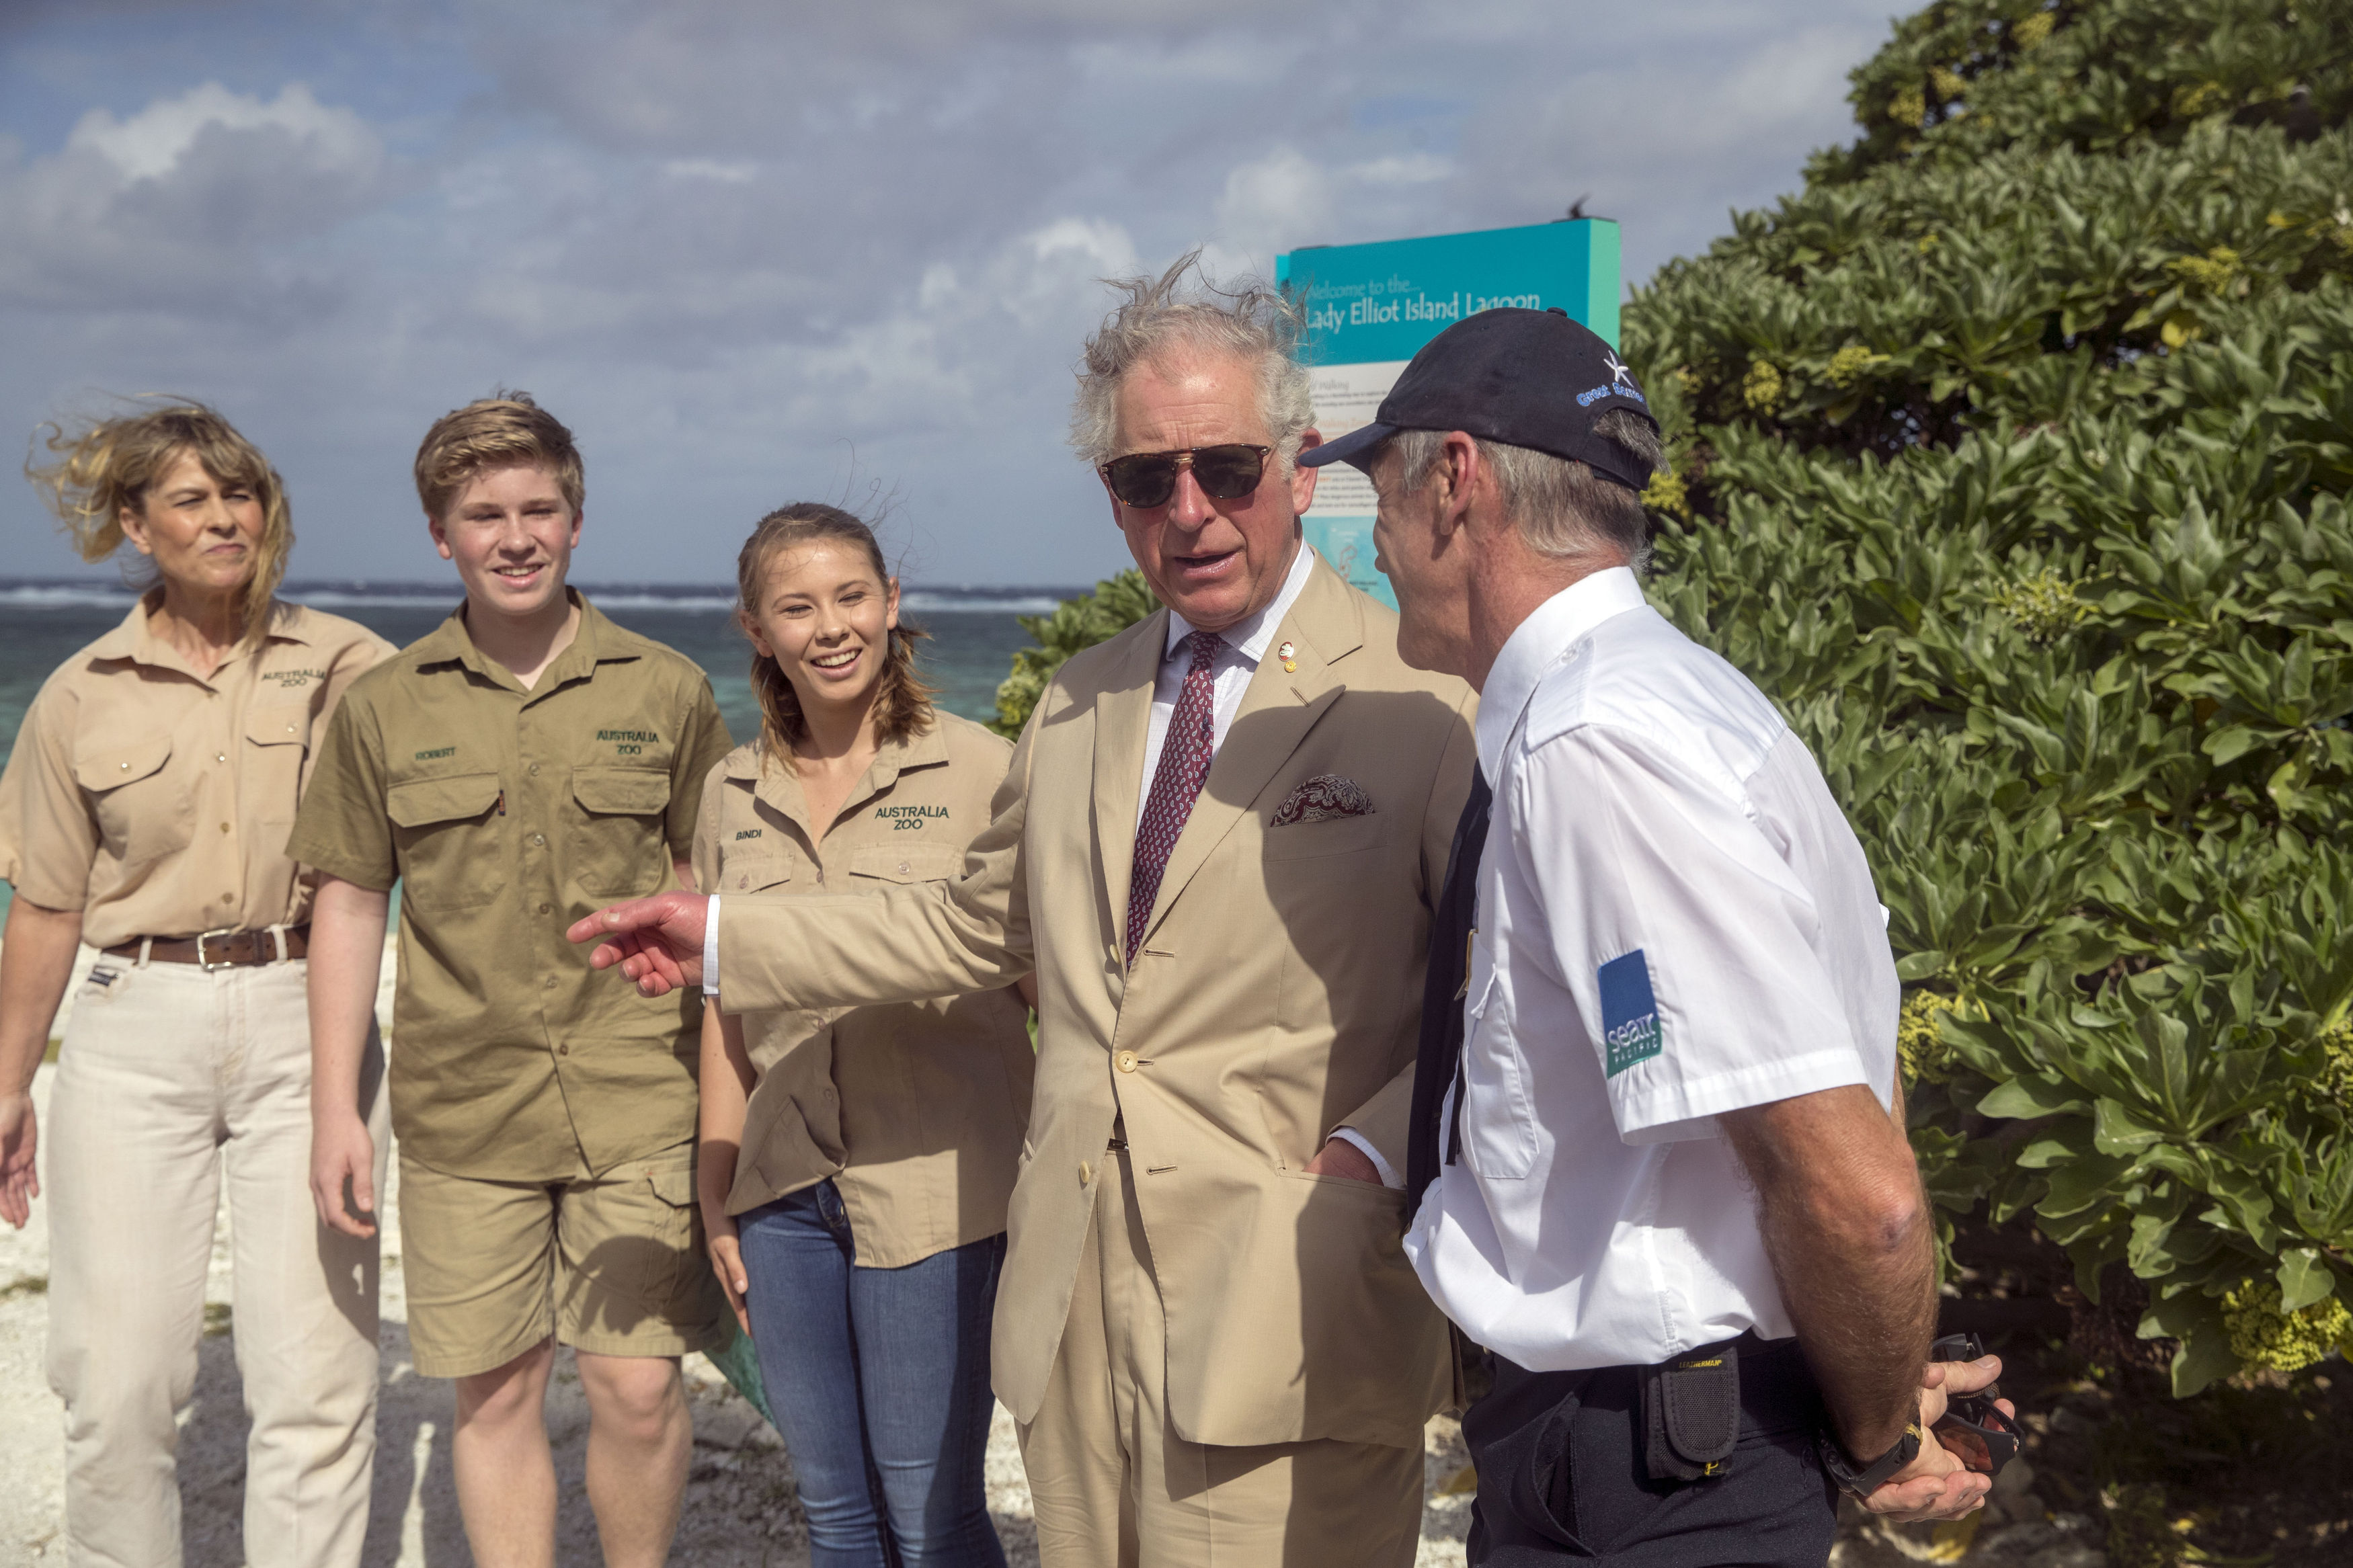 Prince Charles, Camilla 'Delighted' To Join Commonwealth Games Despite Australia Monarchy Issues